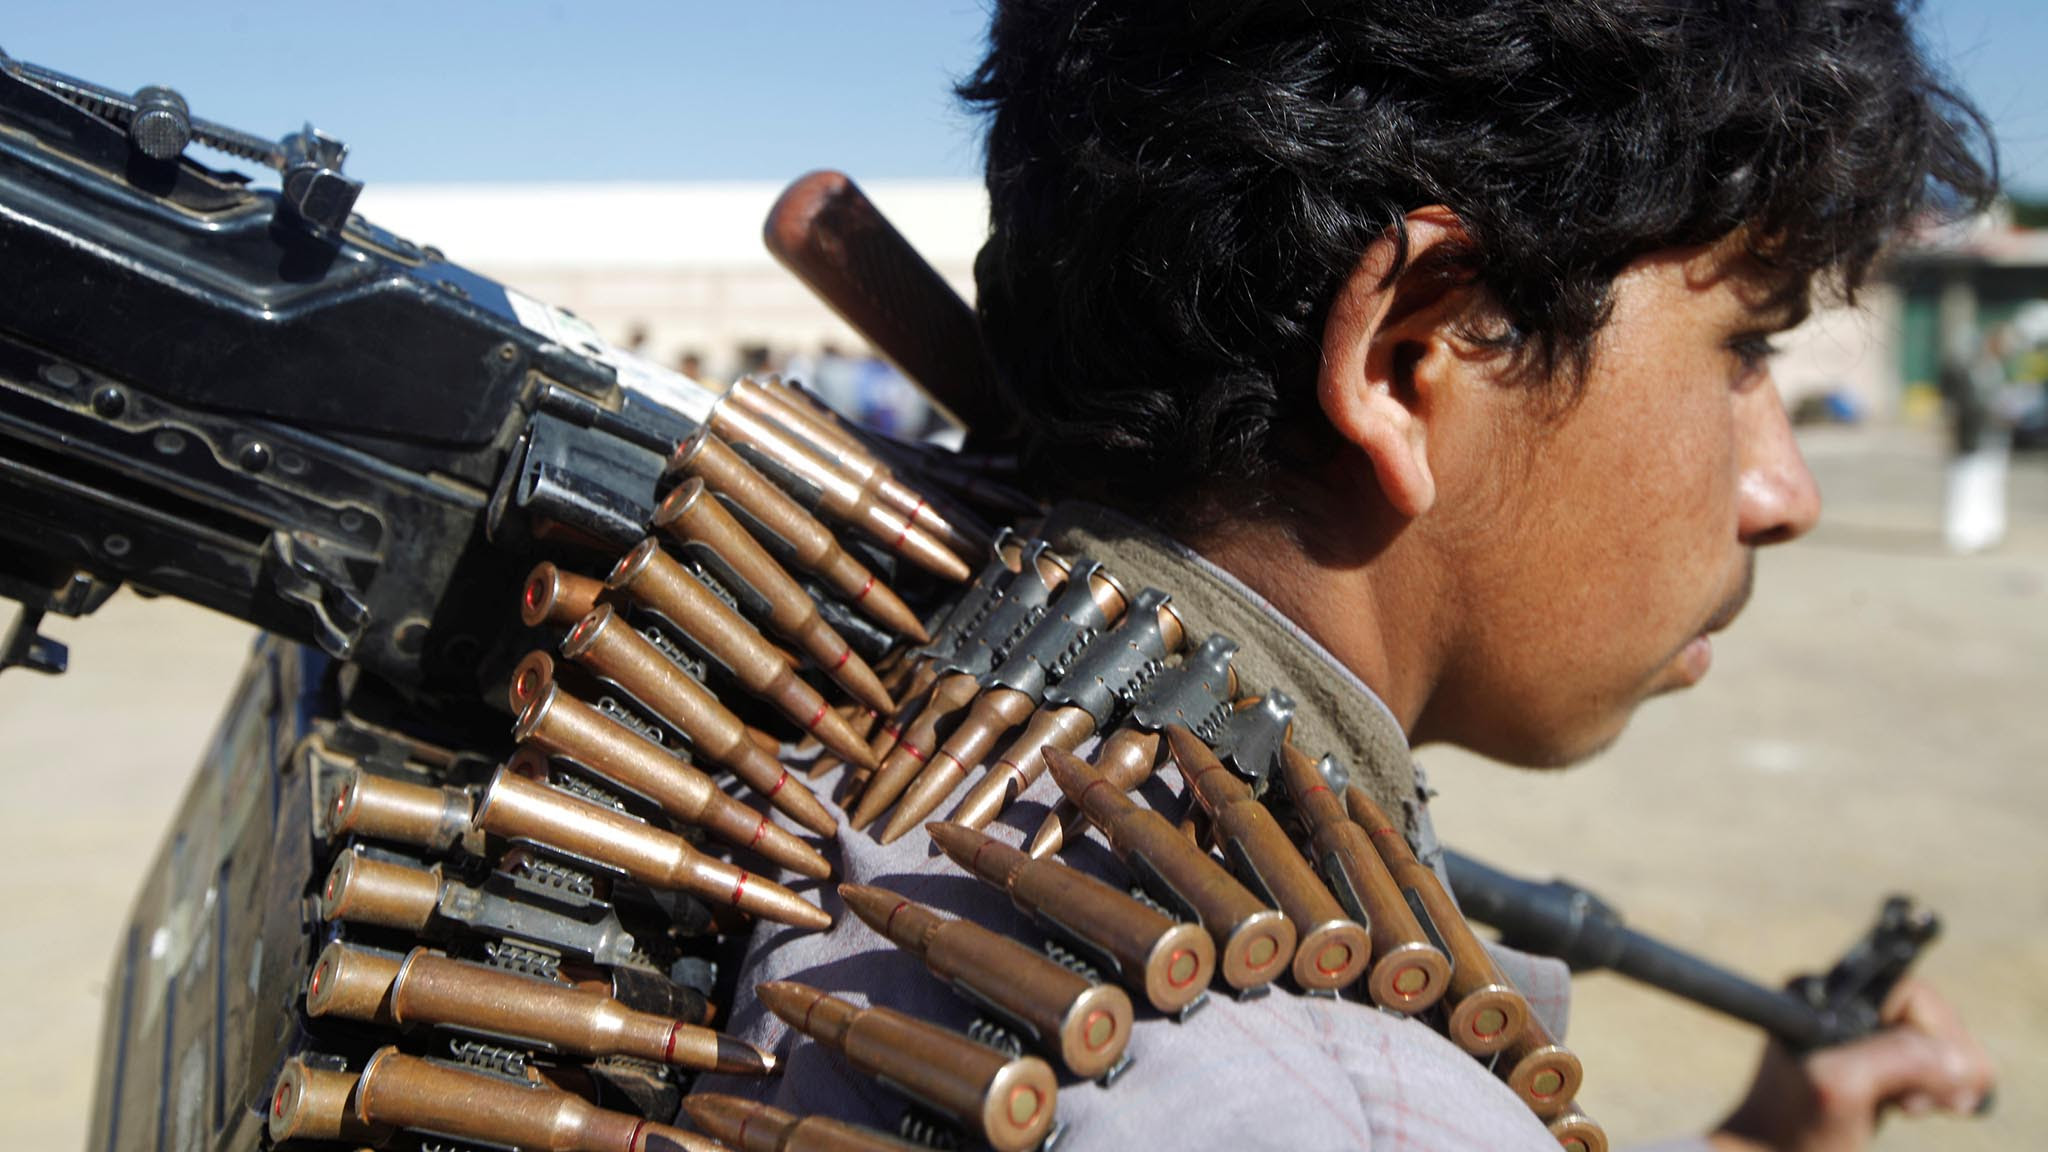 A Houthi rebel holds the barrel of a machine gun he carries during a rally held to mobilize fighters for battles against government forces, in Sanaa, Yemen